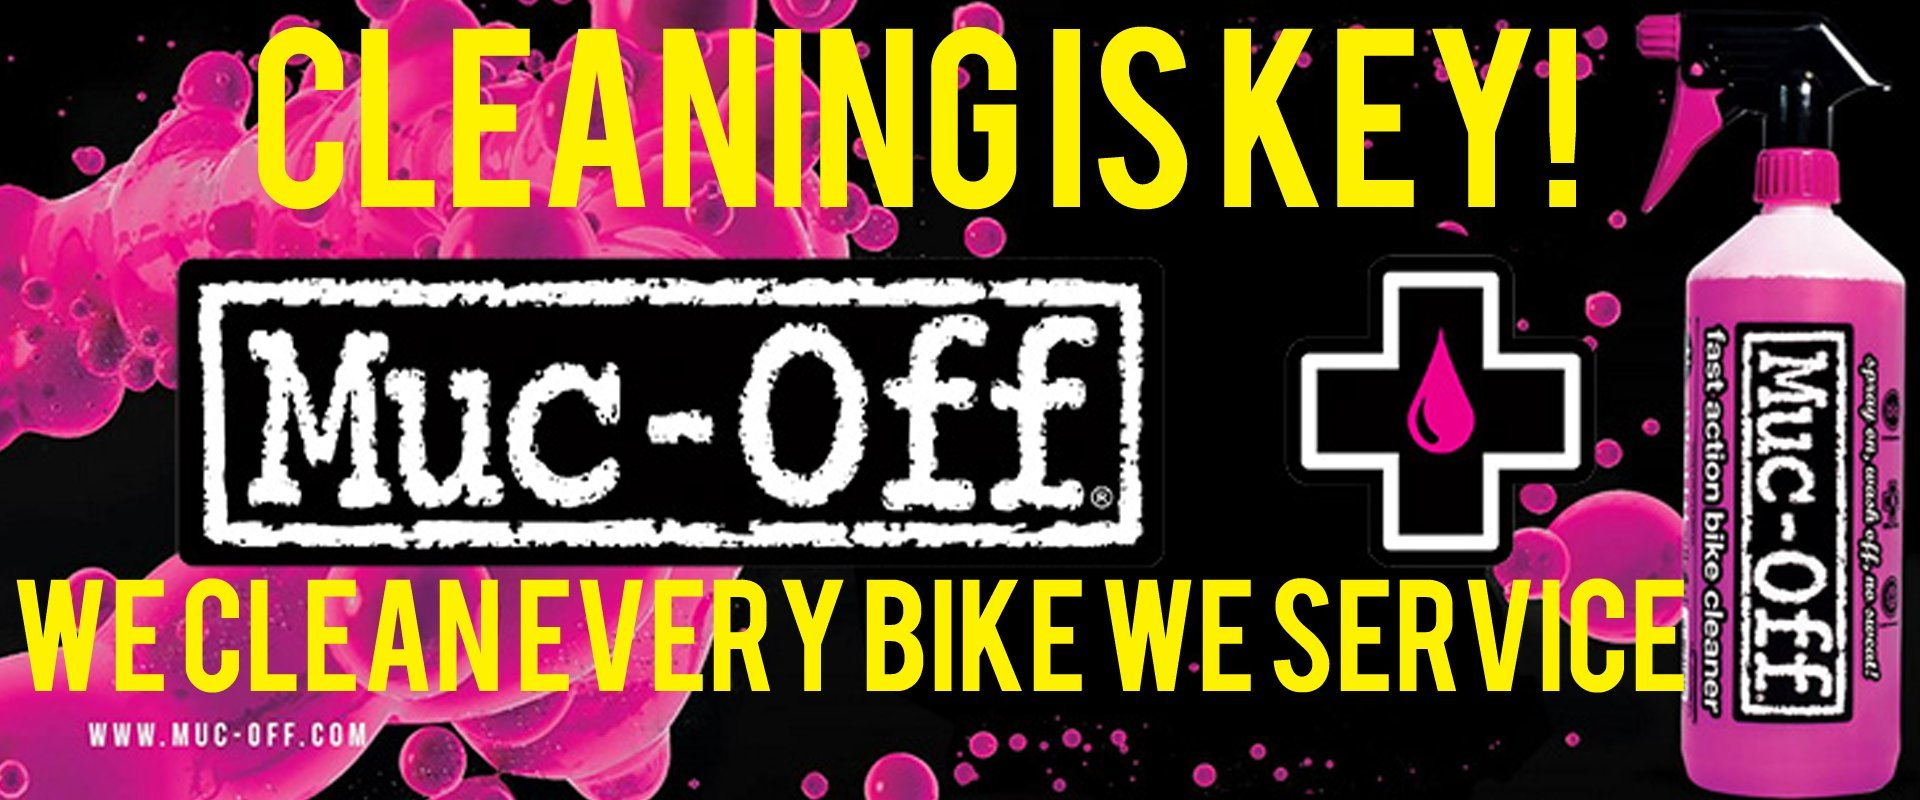 Muc off Lubricants and cleaners, buy online with free uk delivery on orders over £20 at Mobile Cycle Service